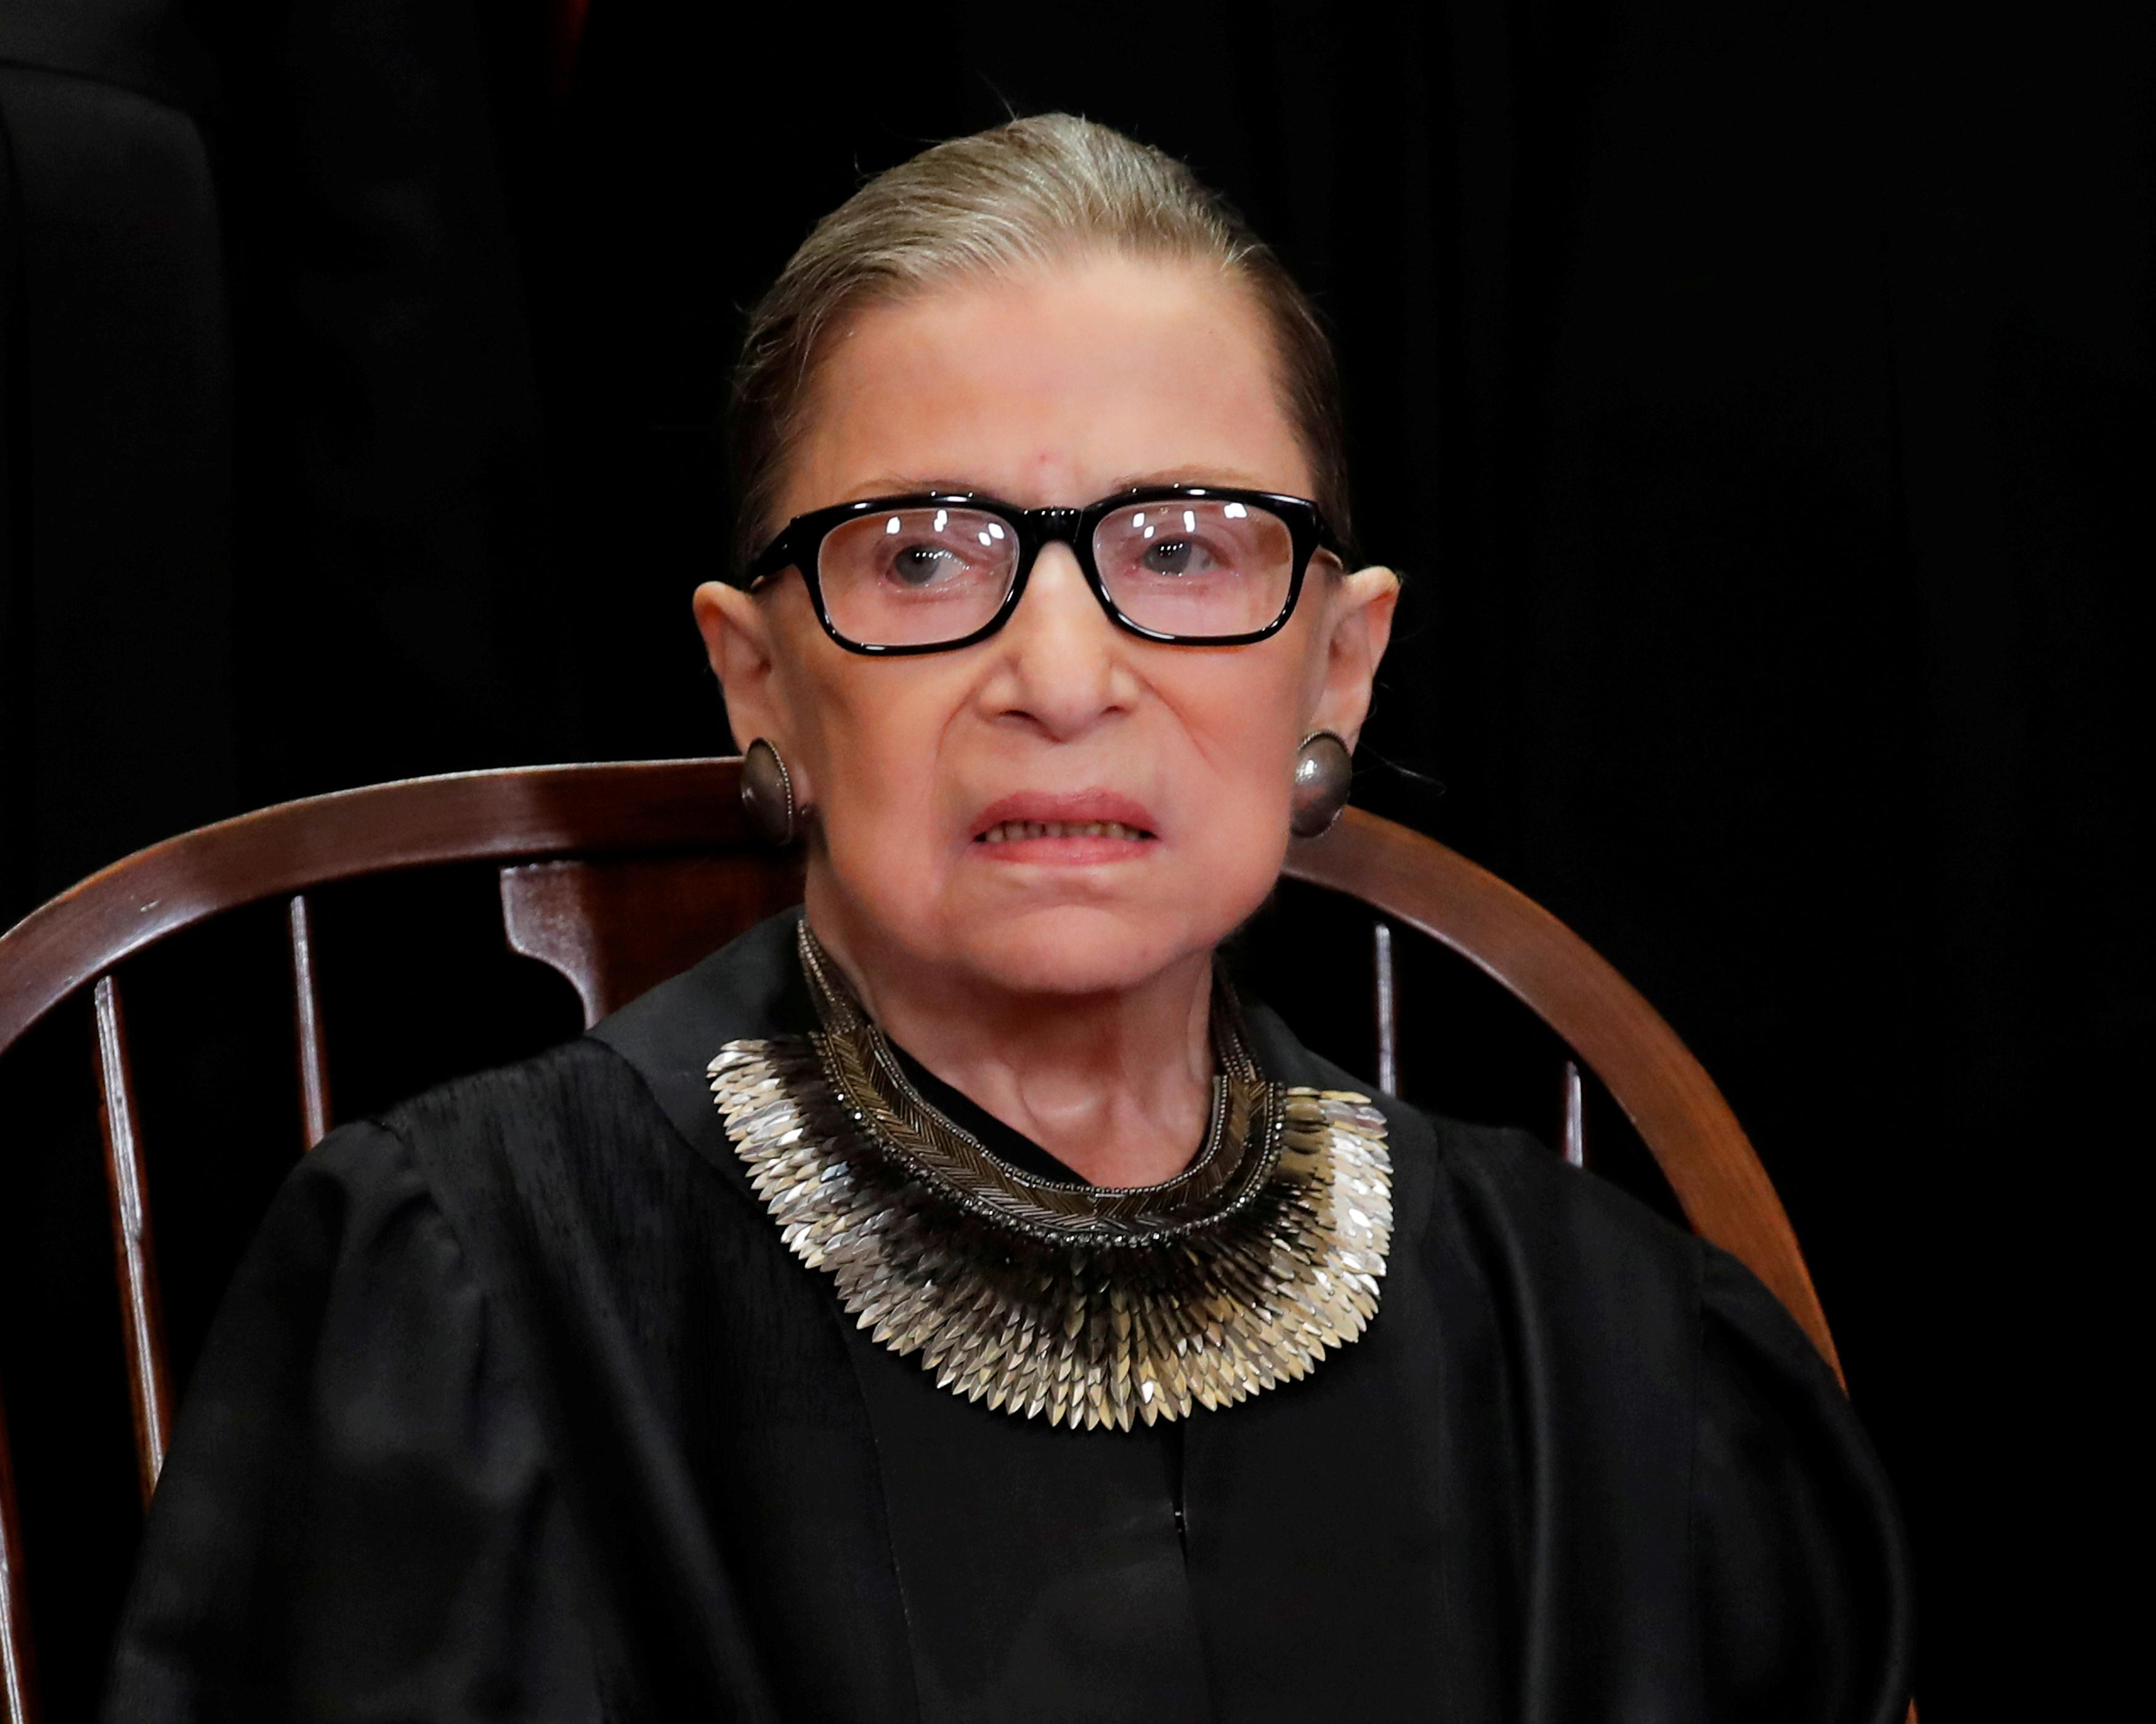 U.S. Justice Ginsburg, 85, has malignant nodules removed from lung